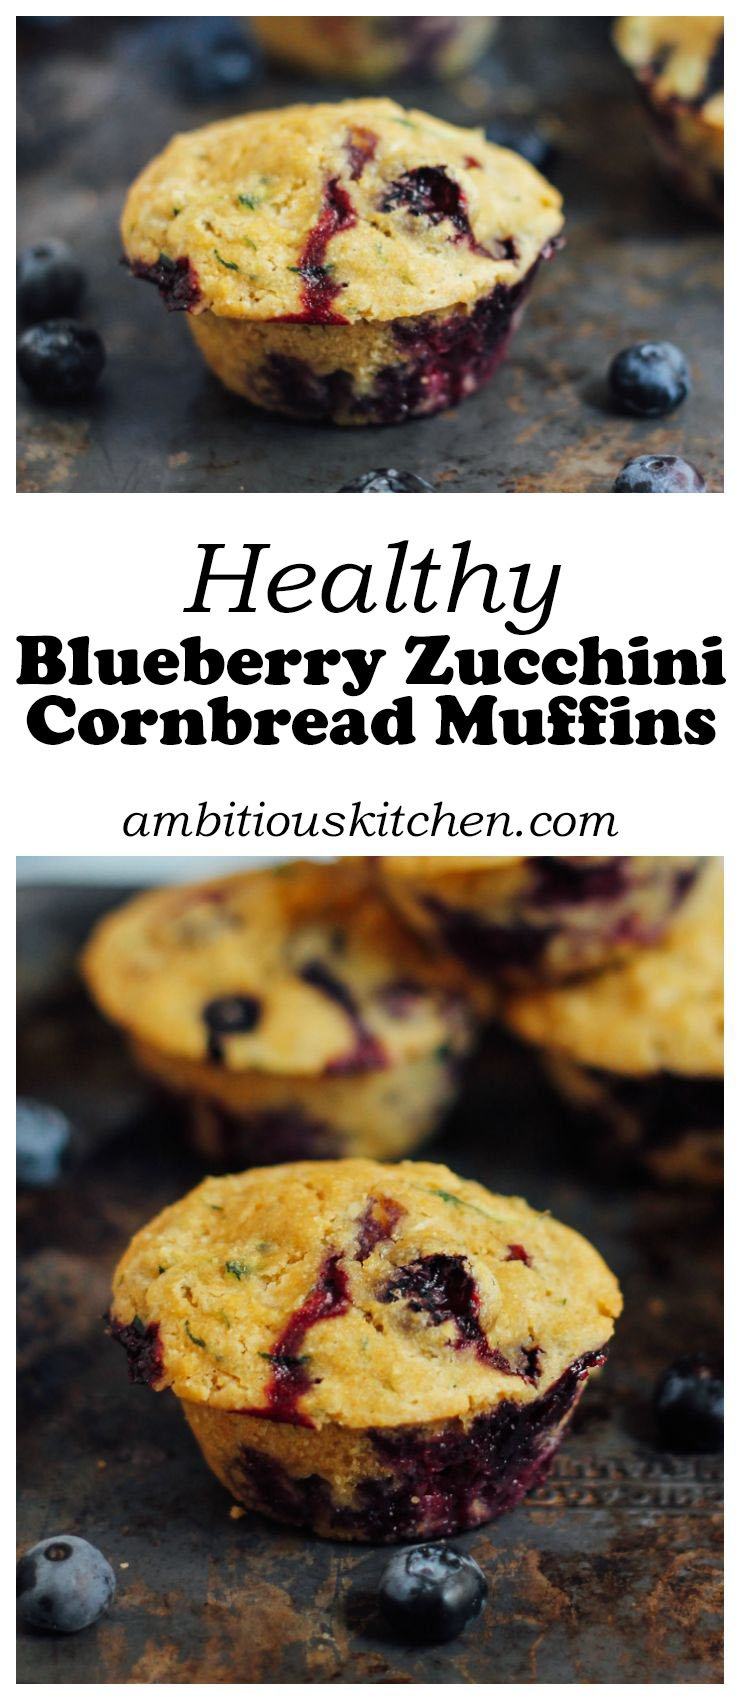 collage of zucchini cornbread muffins with blueberries